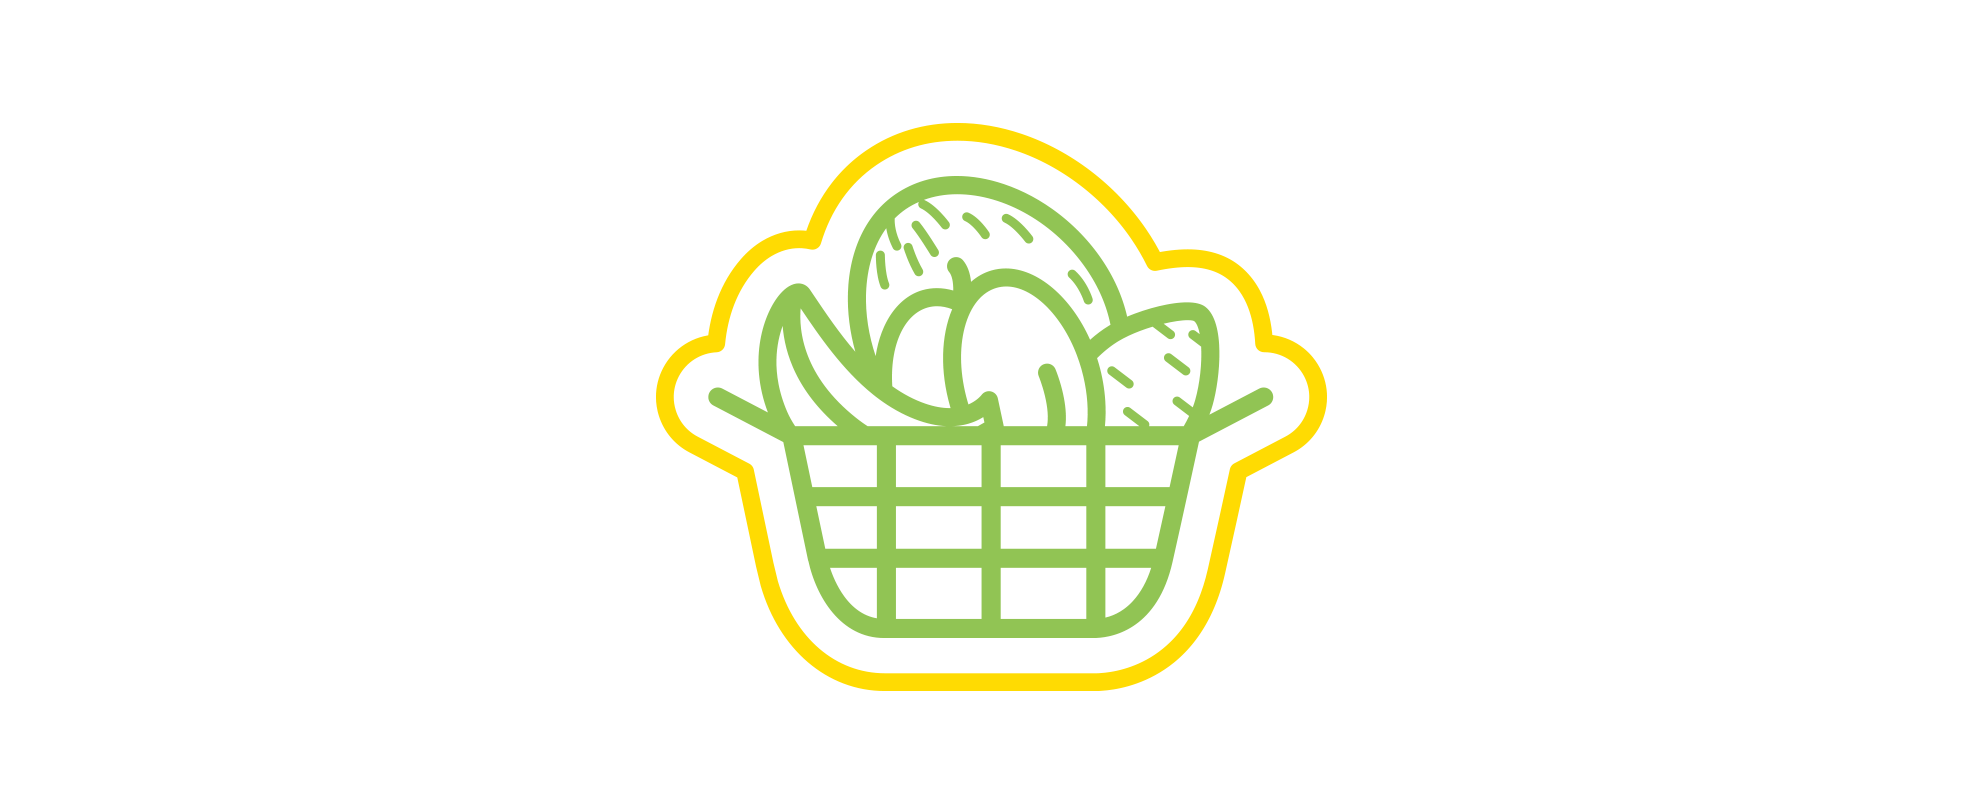 Services for customers icon